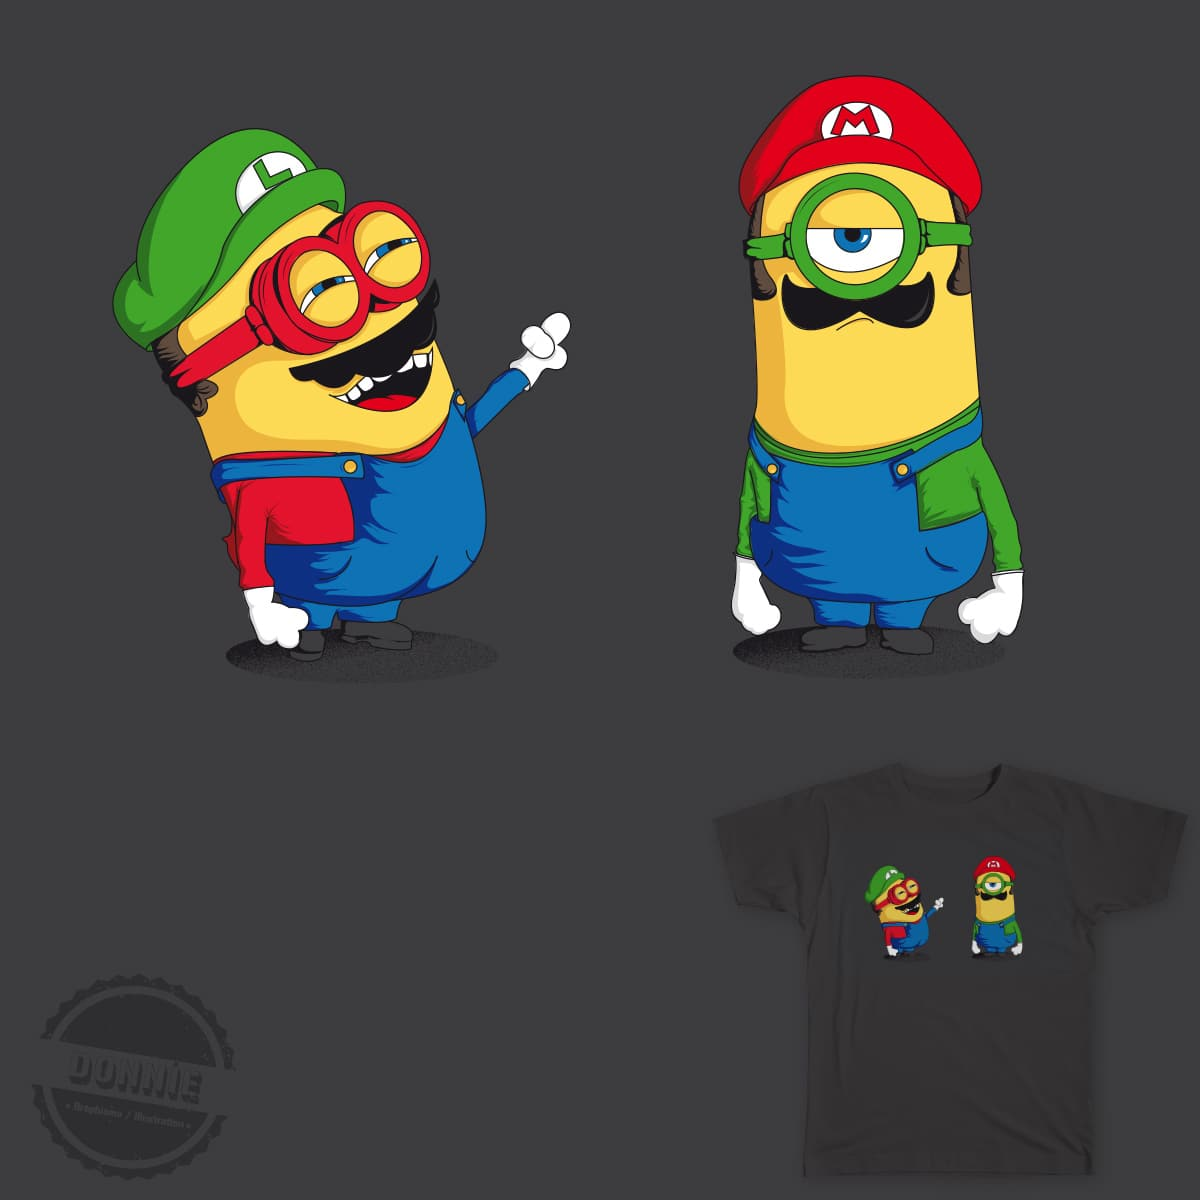 Mini Plumber by DonnieArt on Threadless